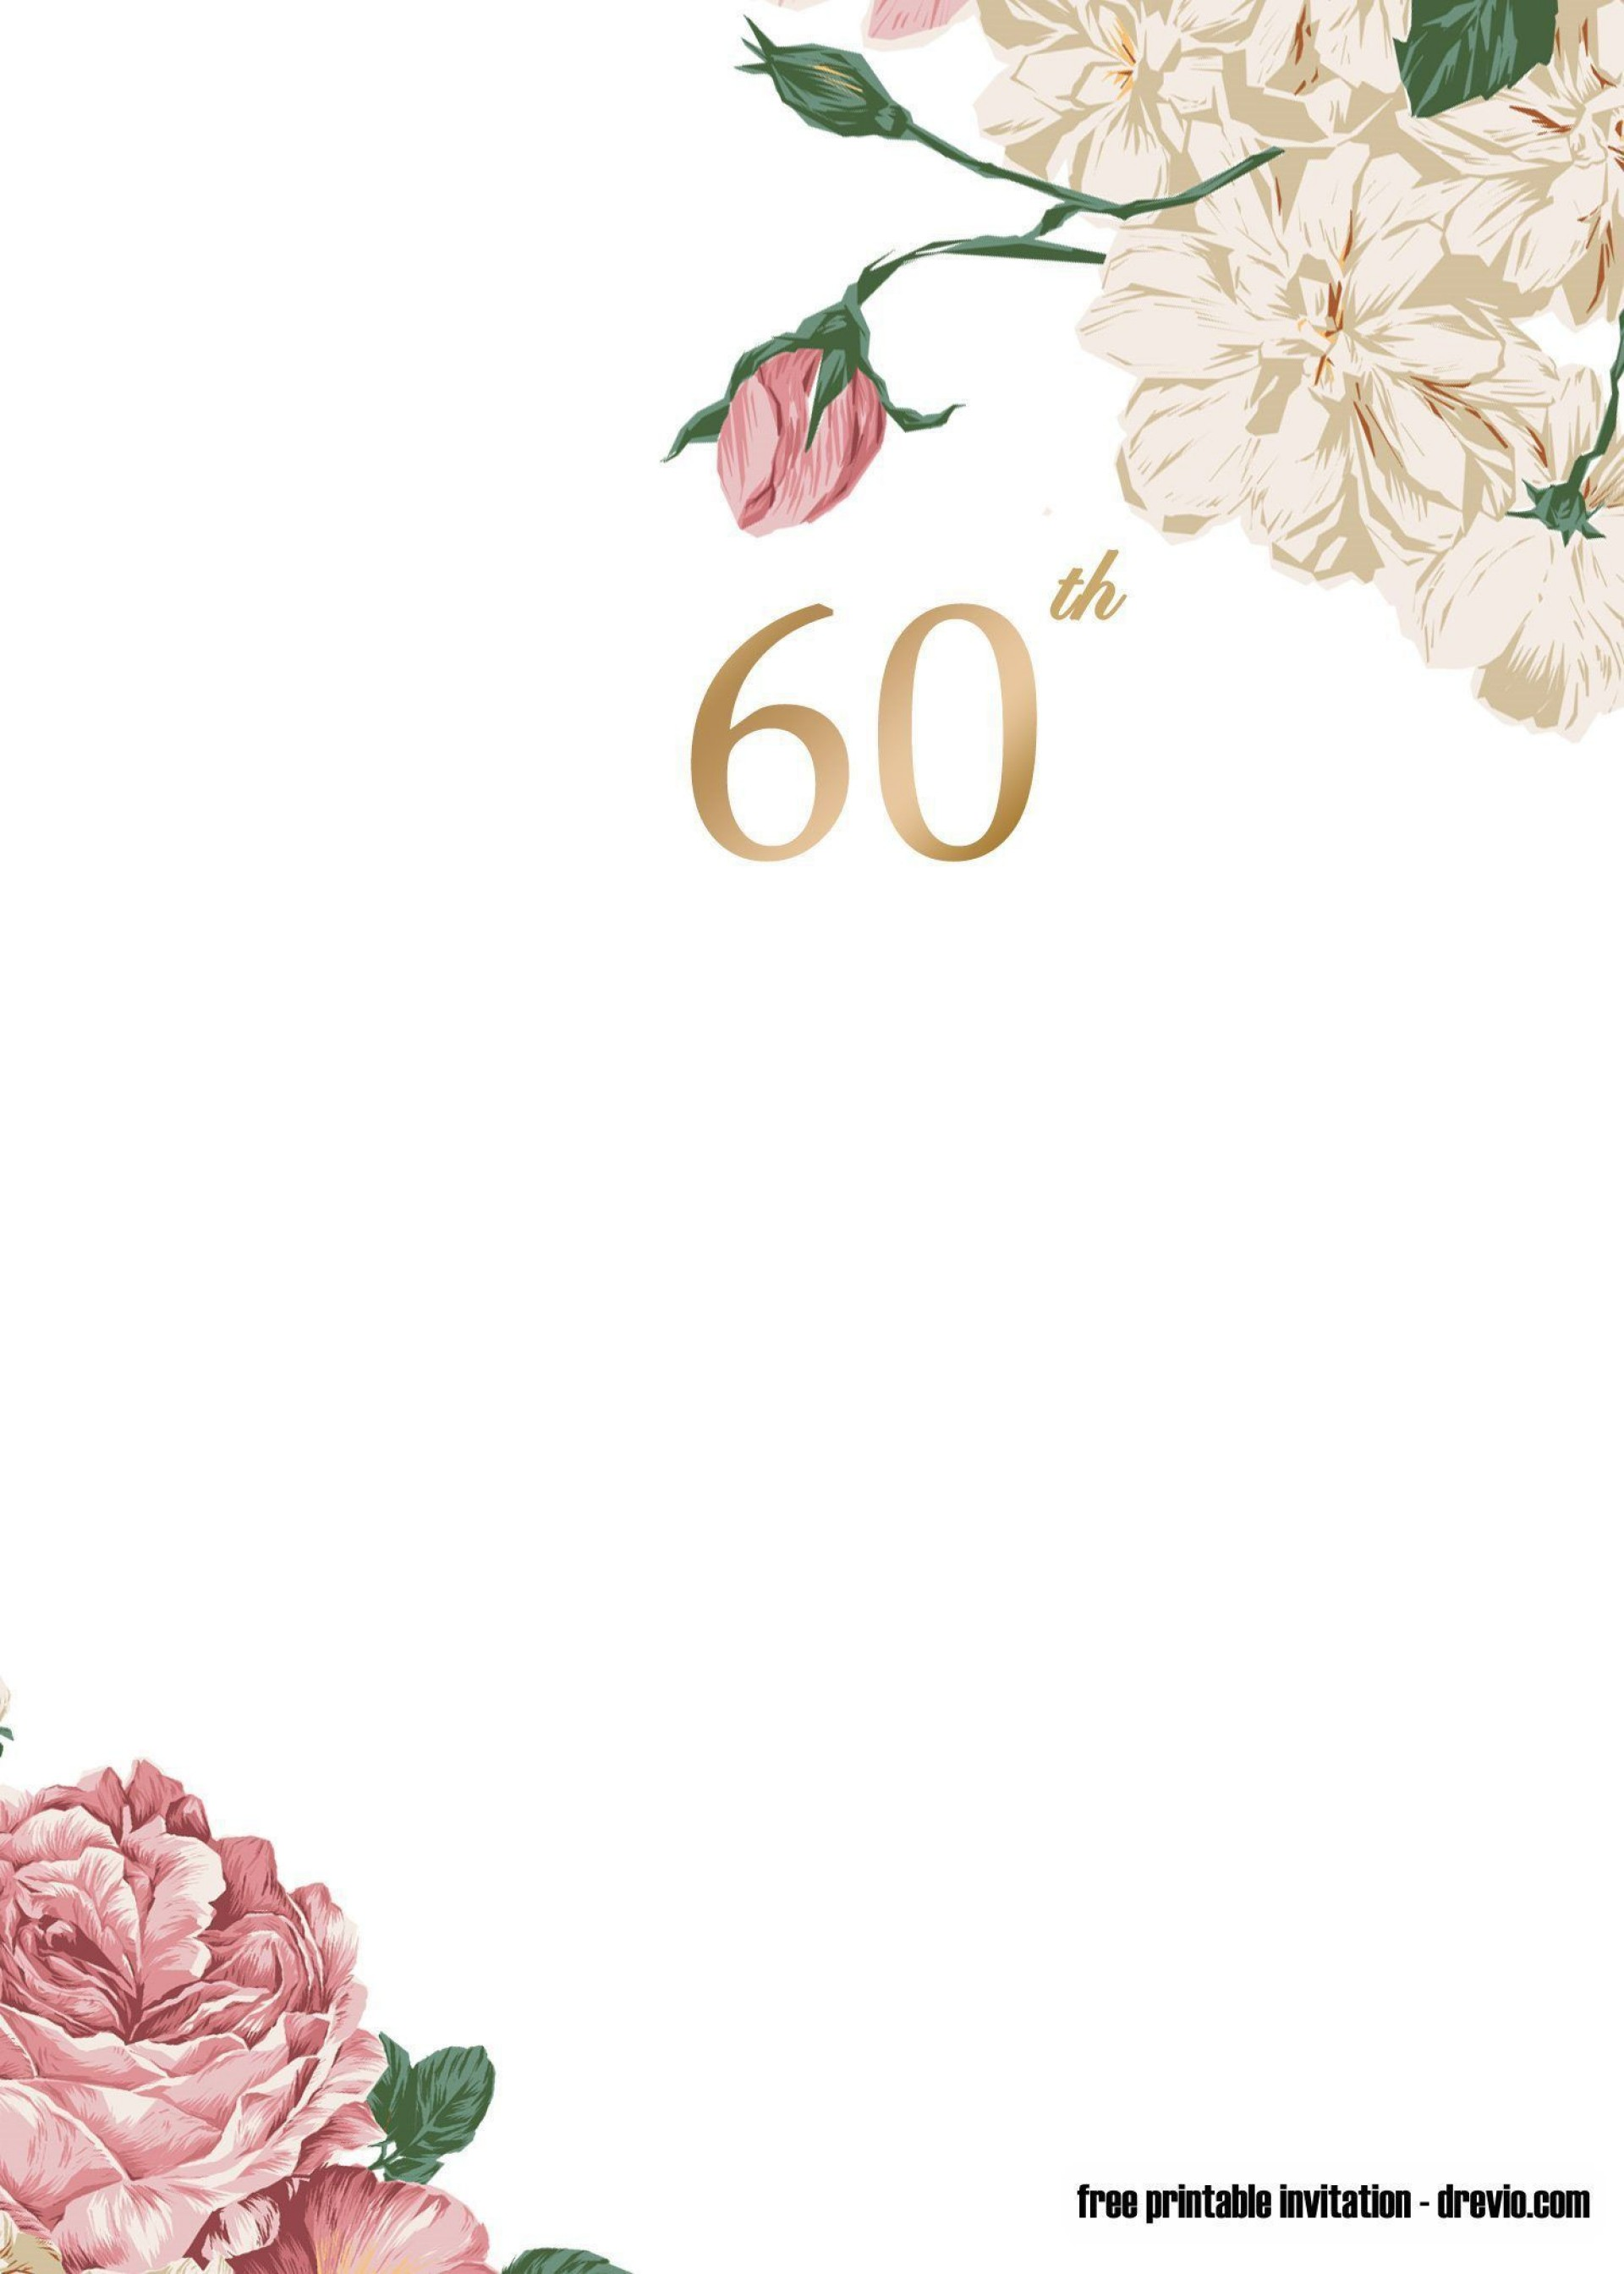 009 Excellent 60 Birthday Invite Template Picture  Templates 60th Printable Free1920